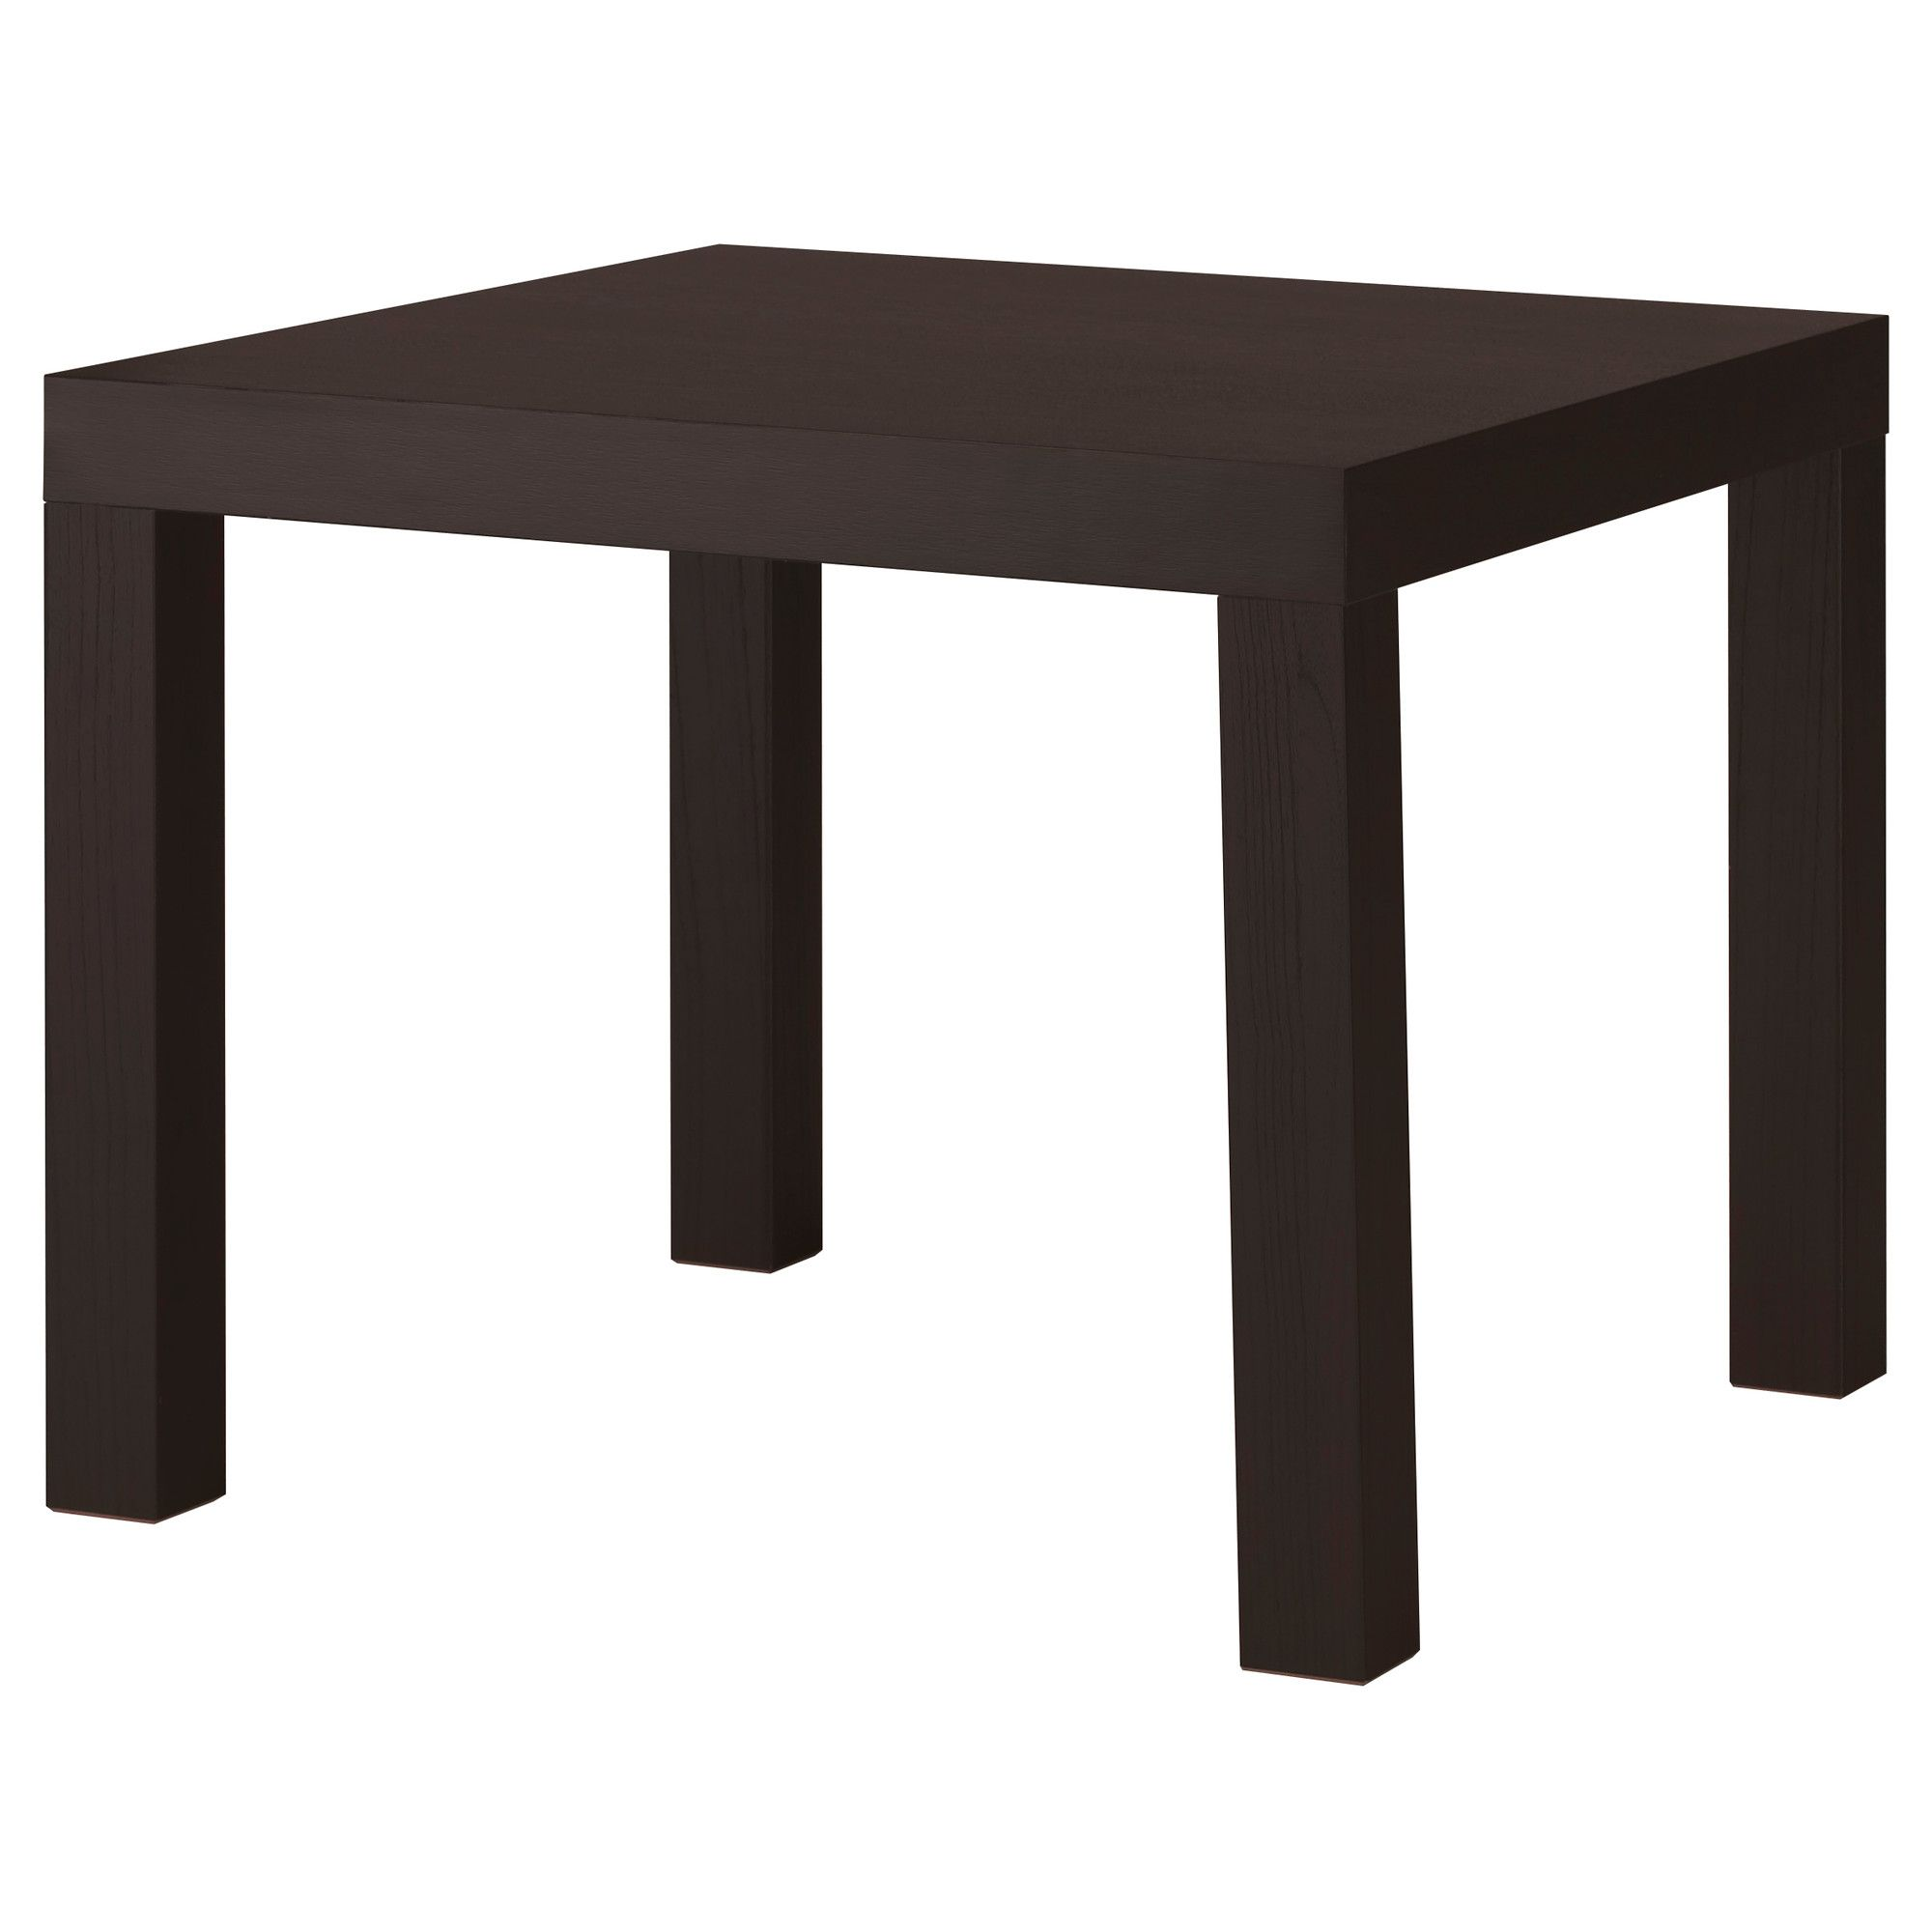 LACK Side table black brown